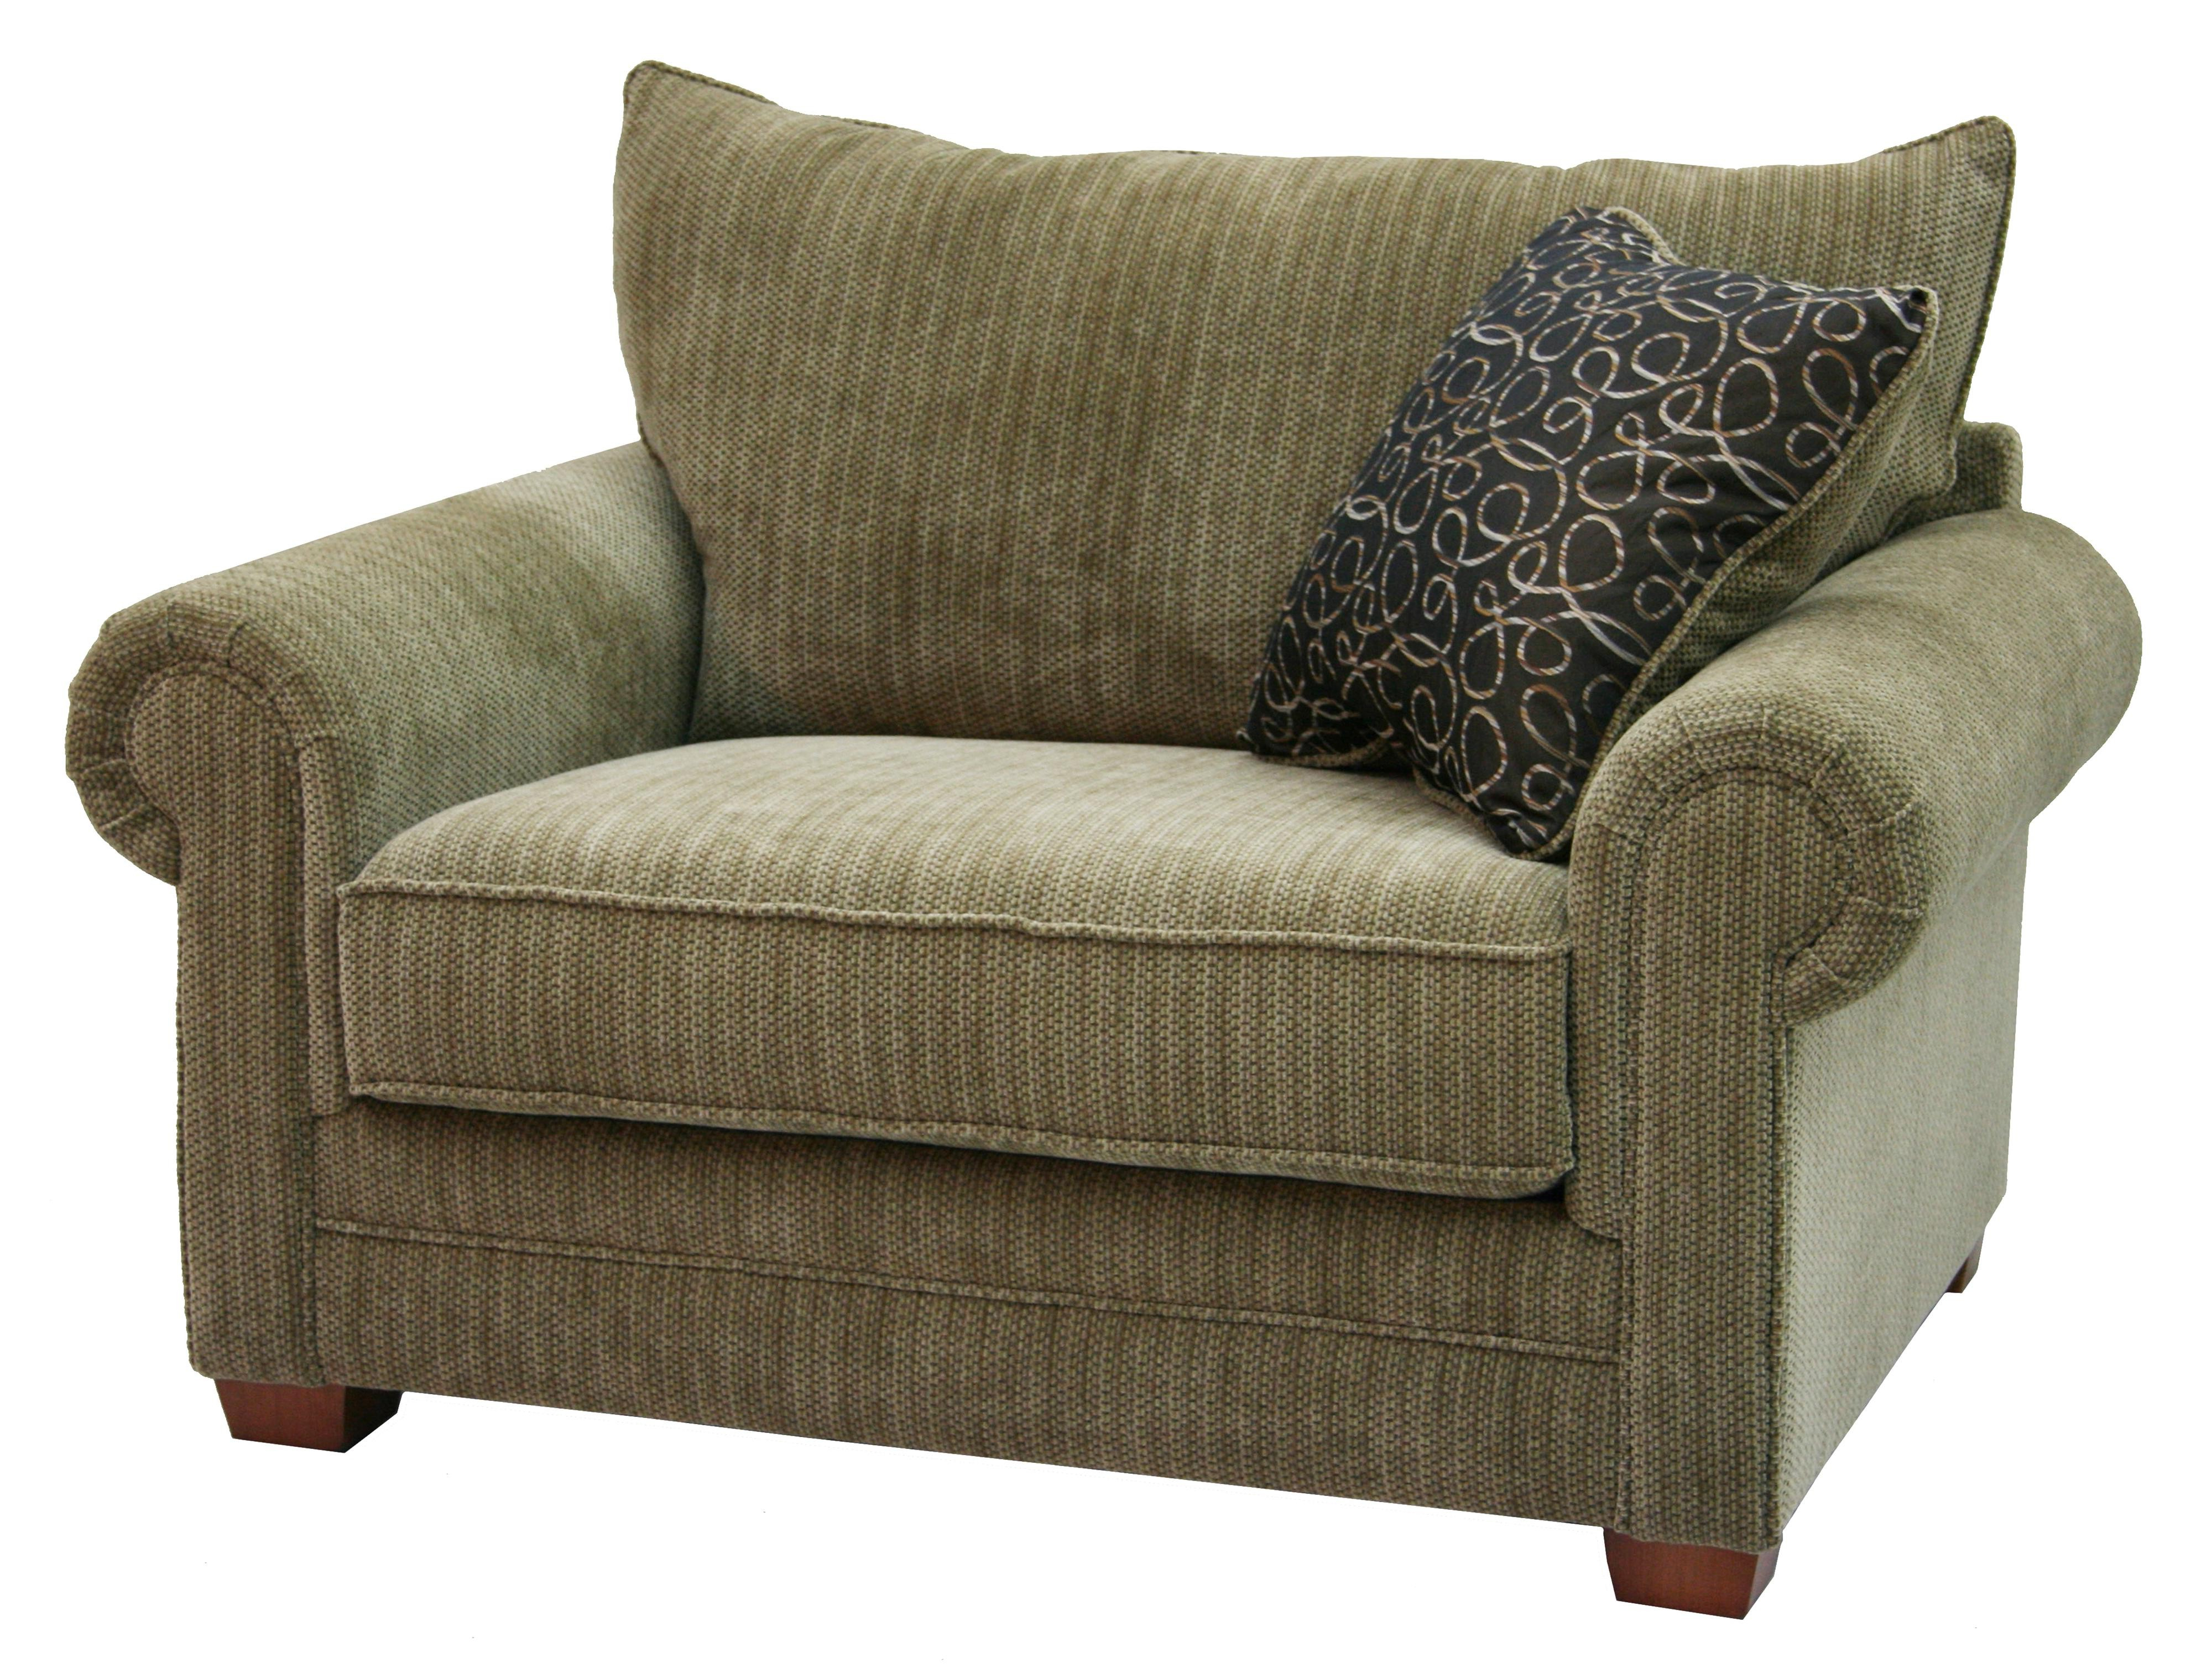 Most Recent Jackson Furniture Anniston Oversized Rolled Arm Chair Lindy S And Pertaining To Maddox Oversized Sofa Chairs (Gallery 3 of 20)